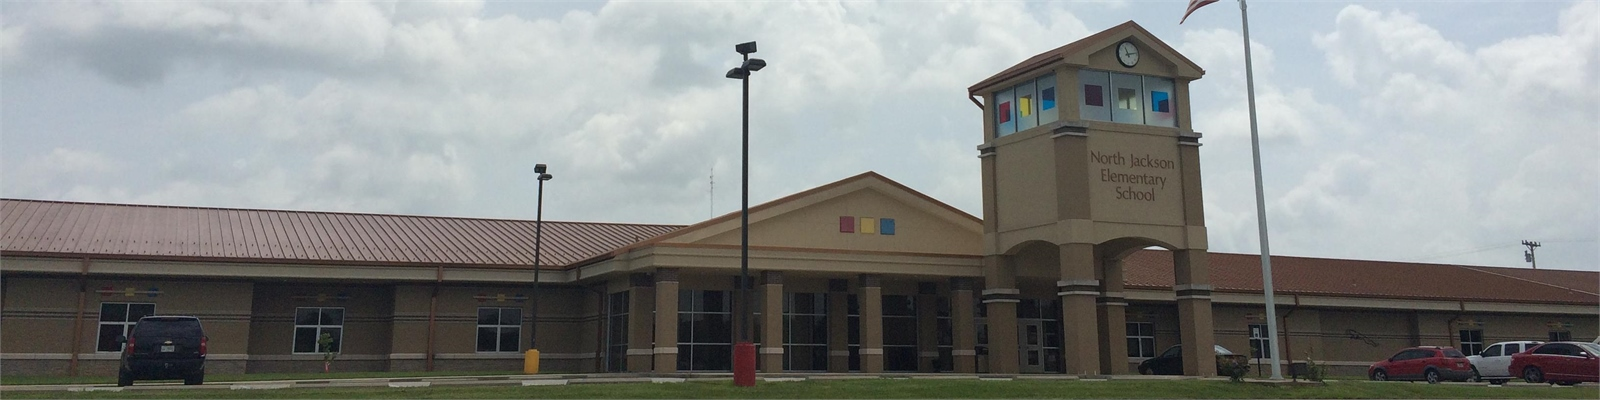 Photo of North Jackson Elementary